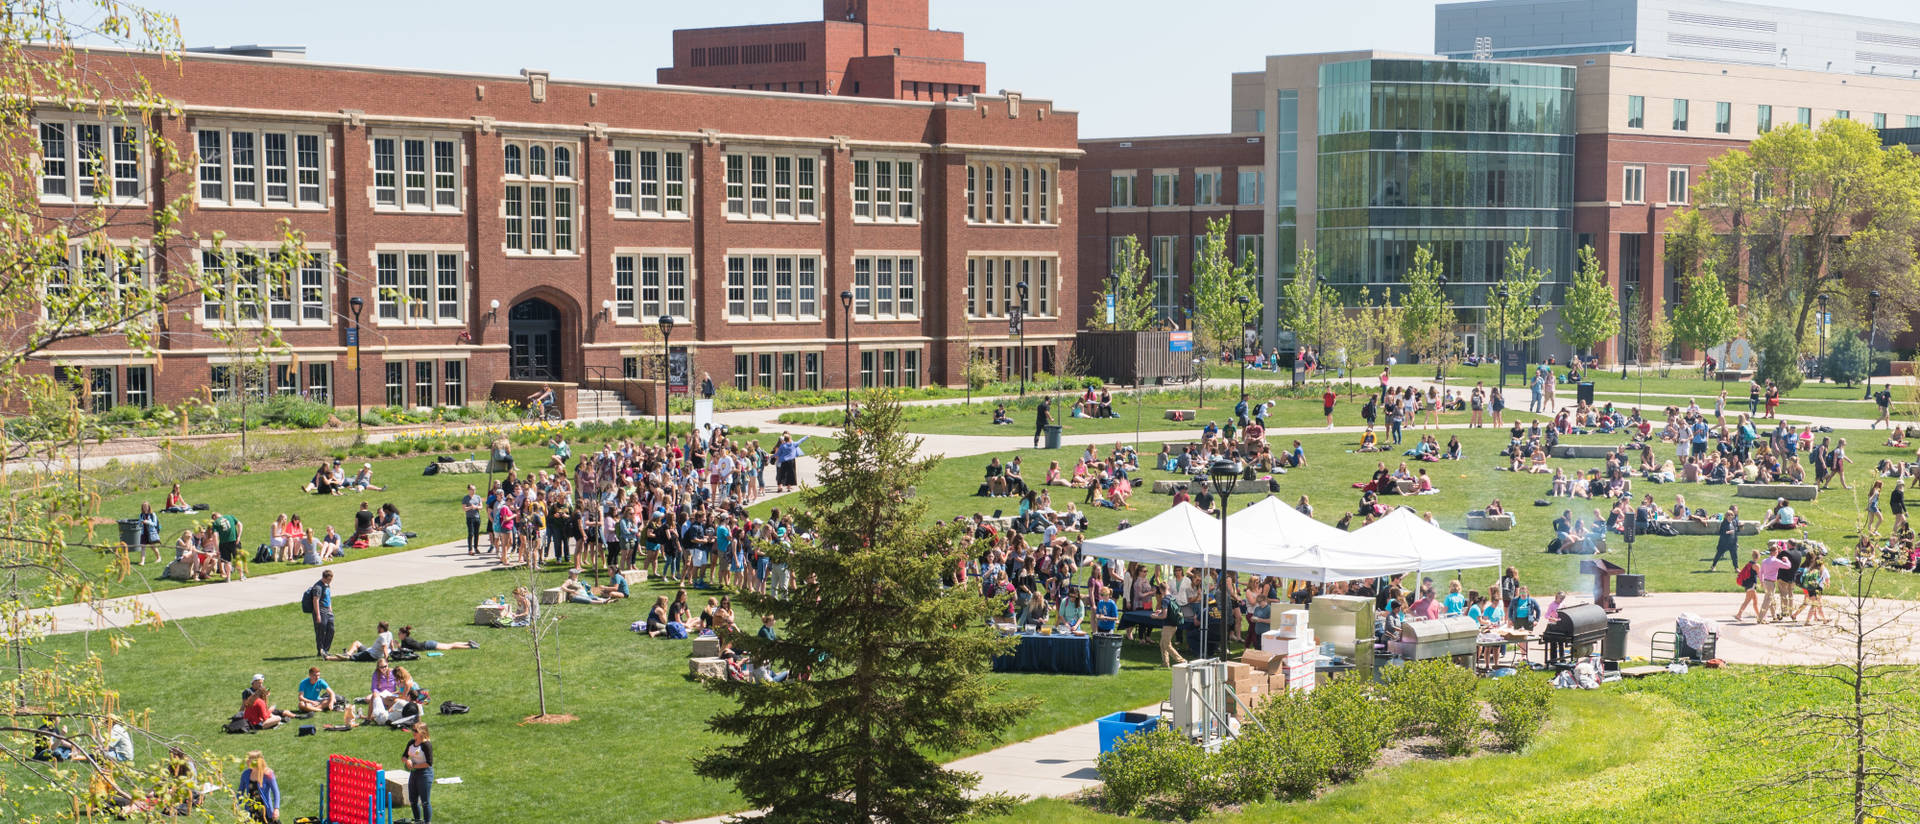 A view of Schofield and Centennial Halls from the UW-Eau Claire campus mall.